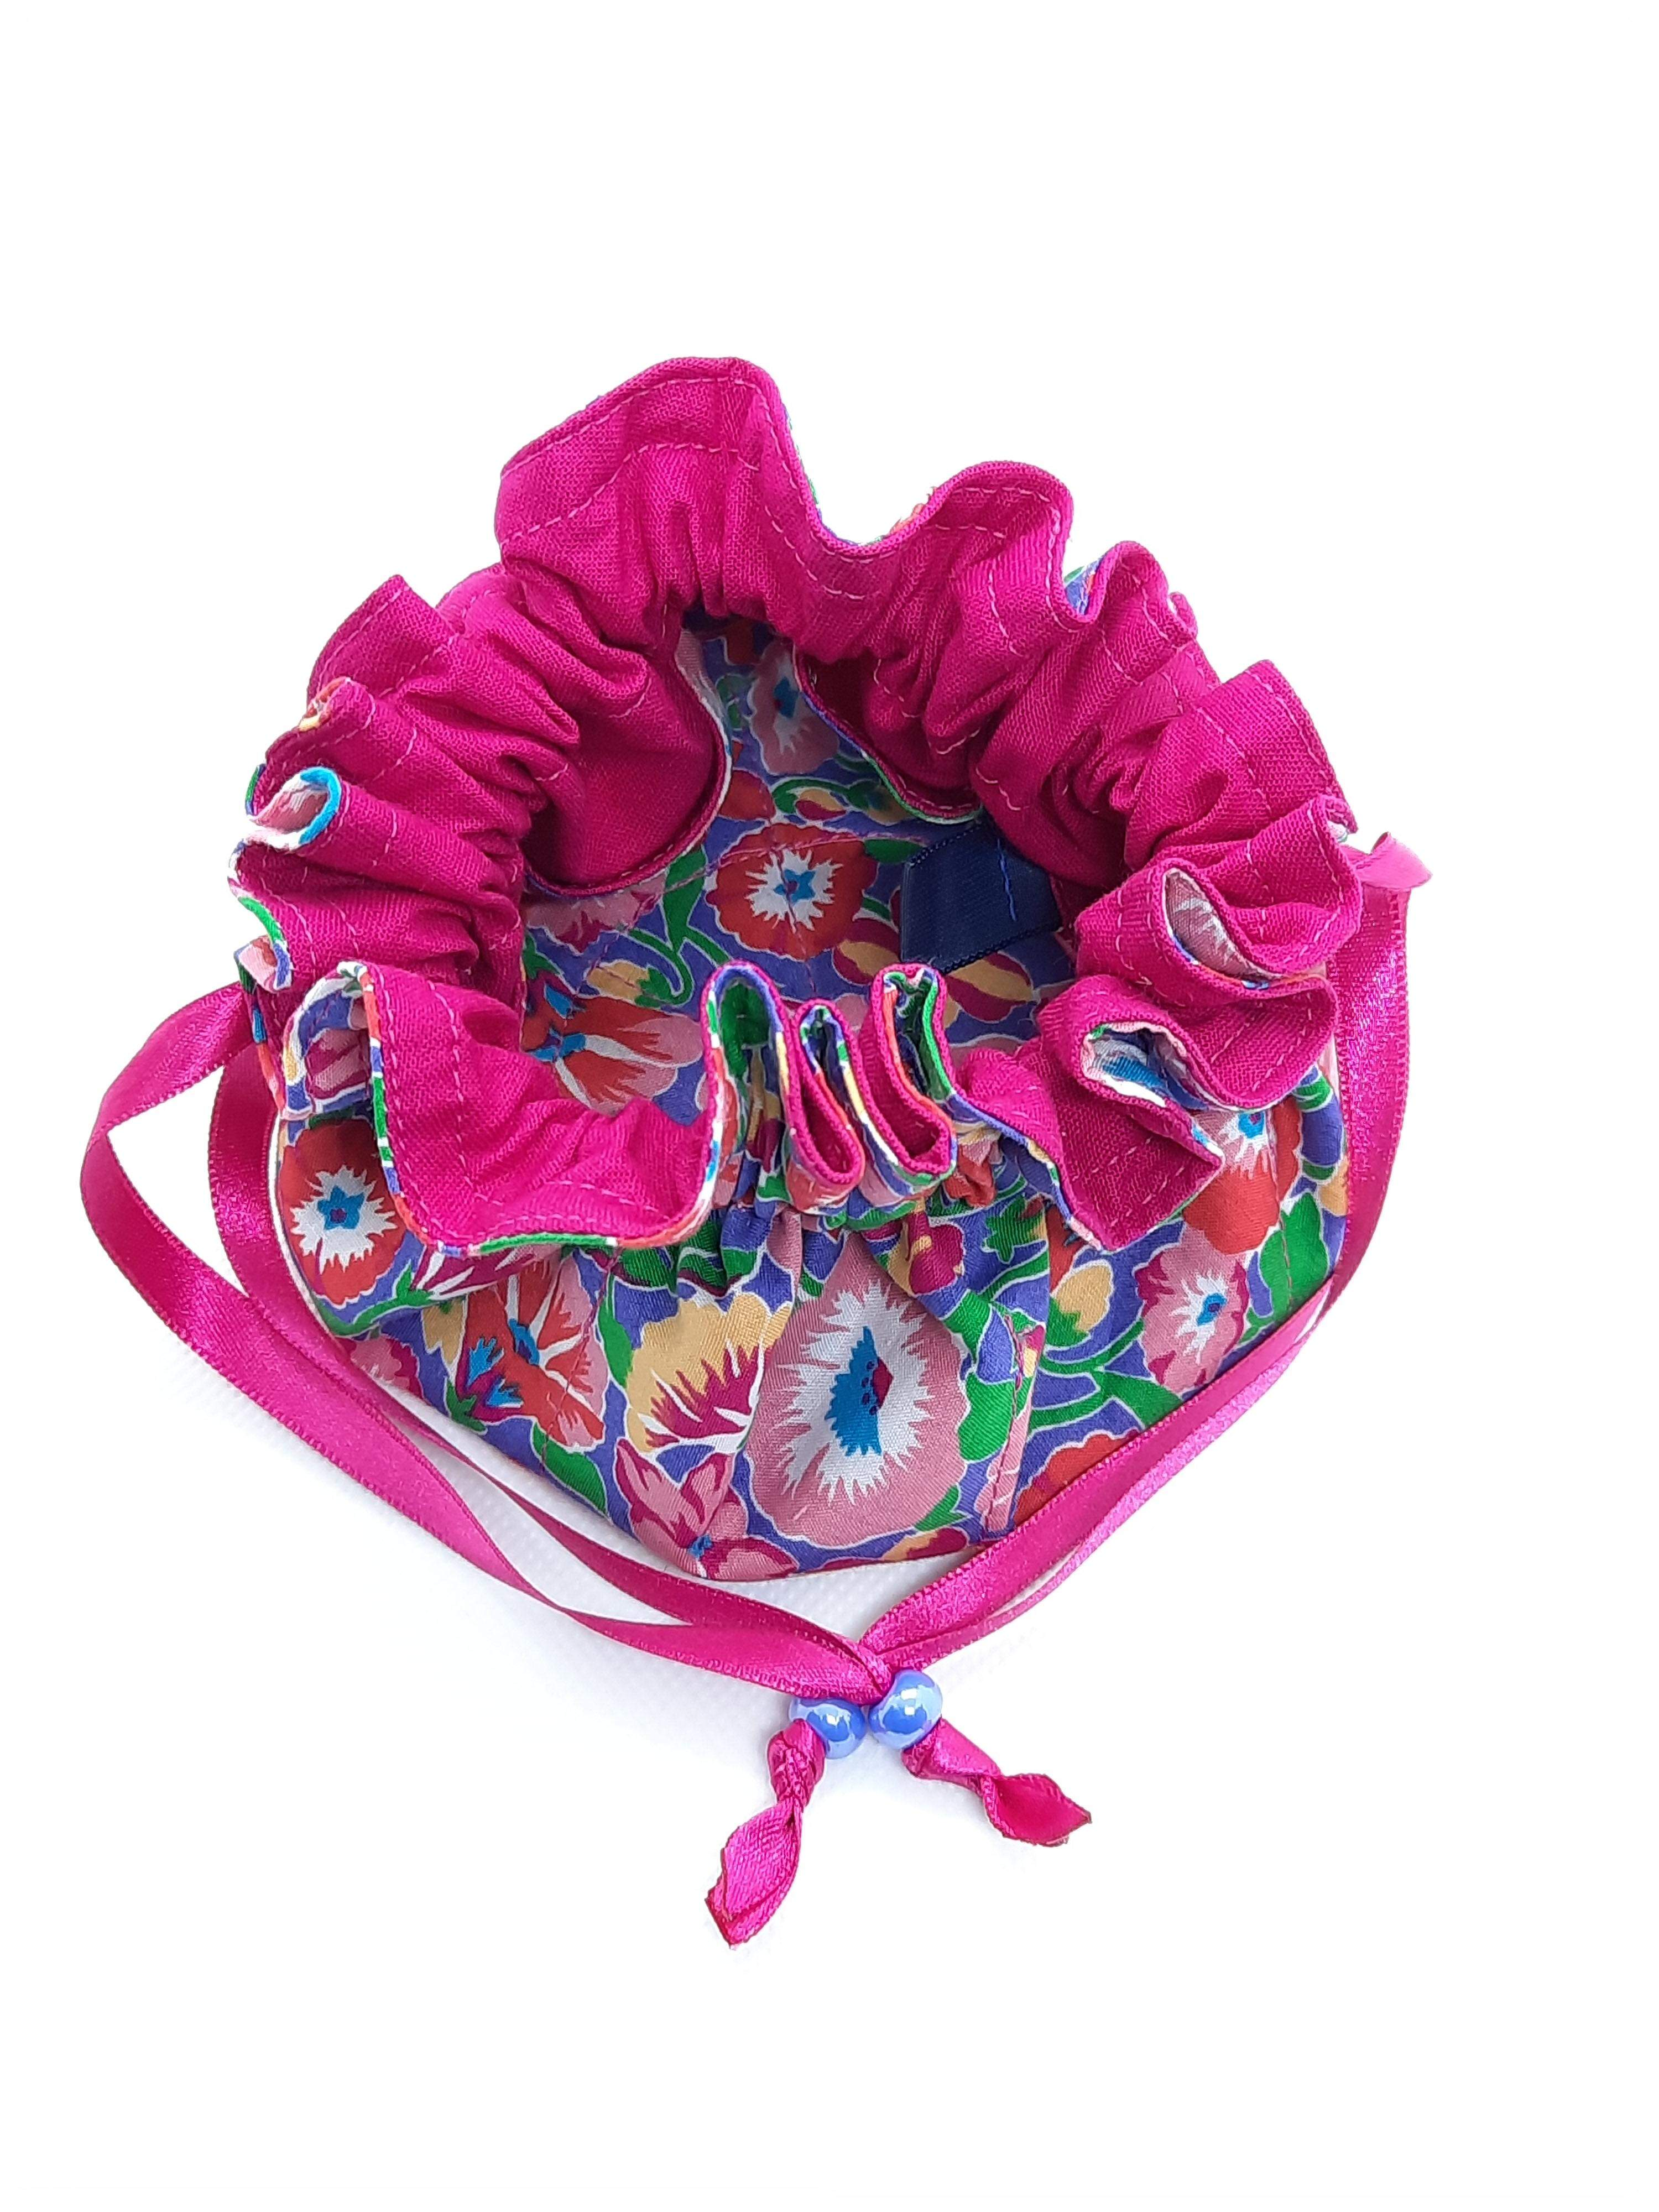 Jewellery Pouch - pink lining, pink ribbon, purple bead